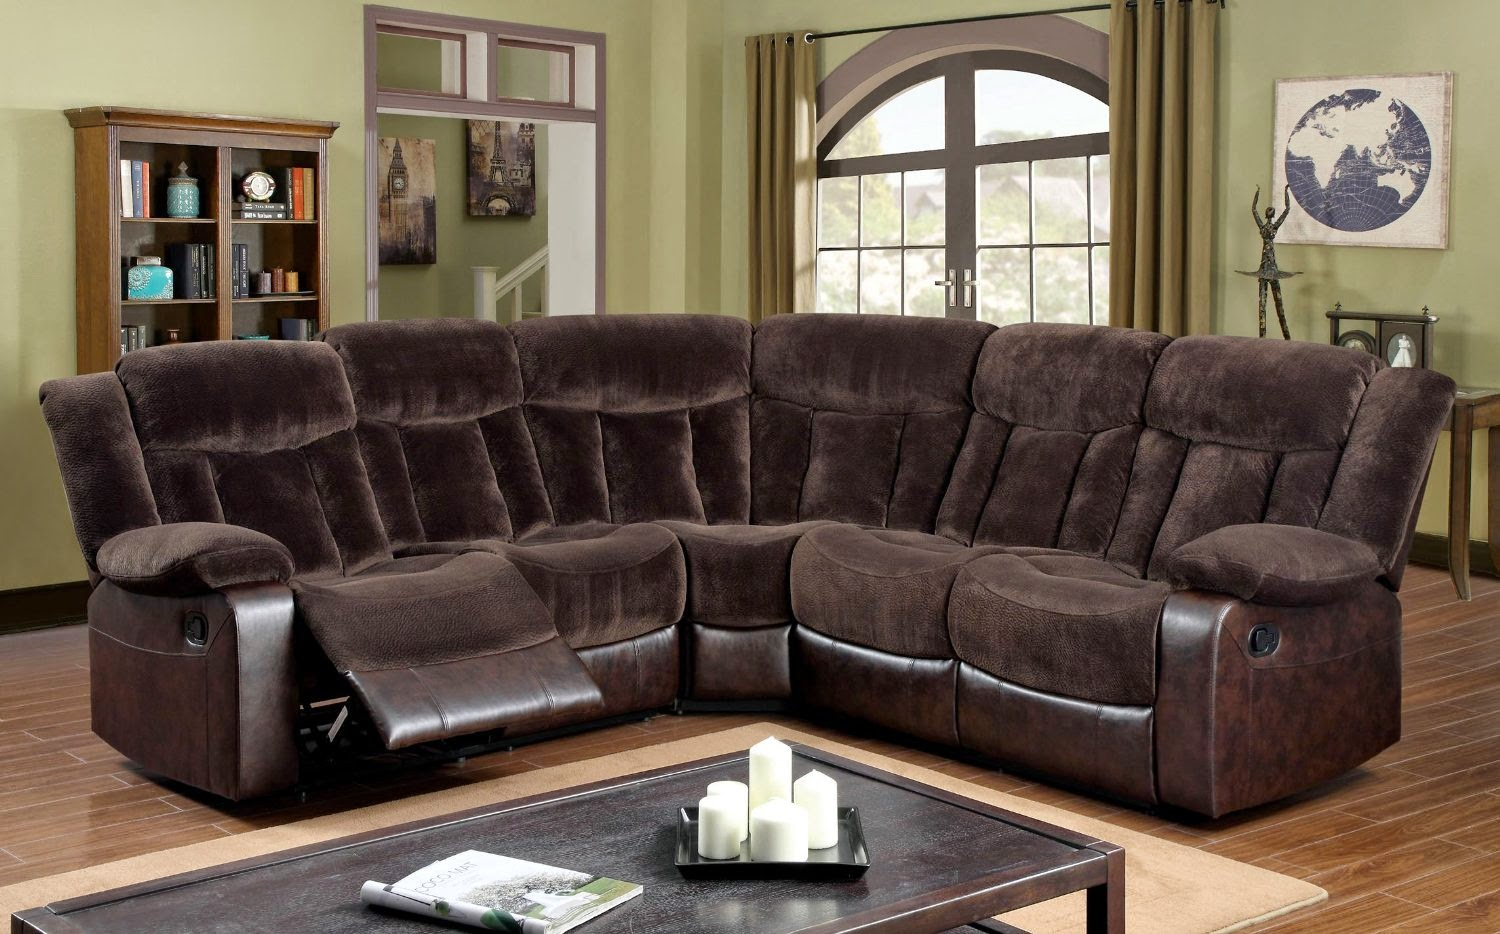 curved sofa furniture reviews curved leather sofa recliner. Black Bedroom Furniture Sets. Home Design Ideas